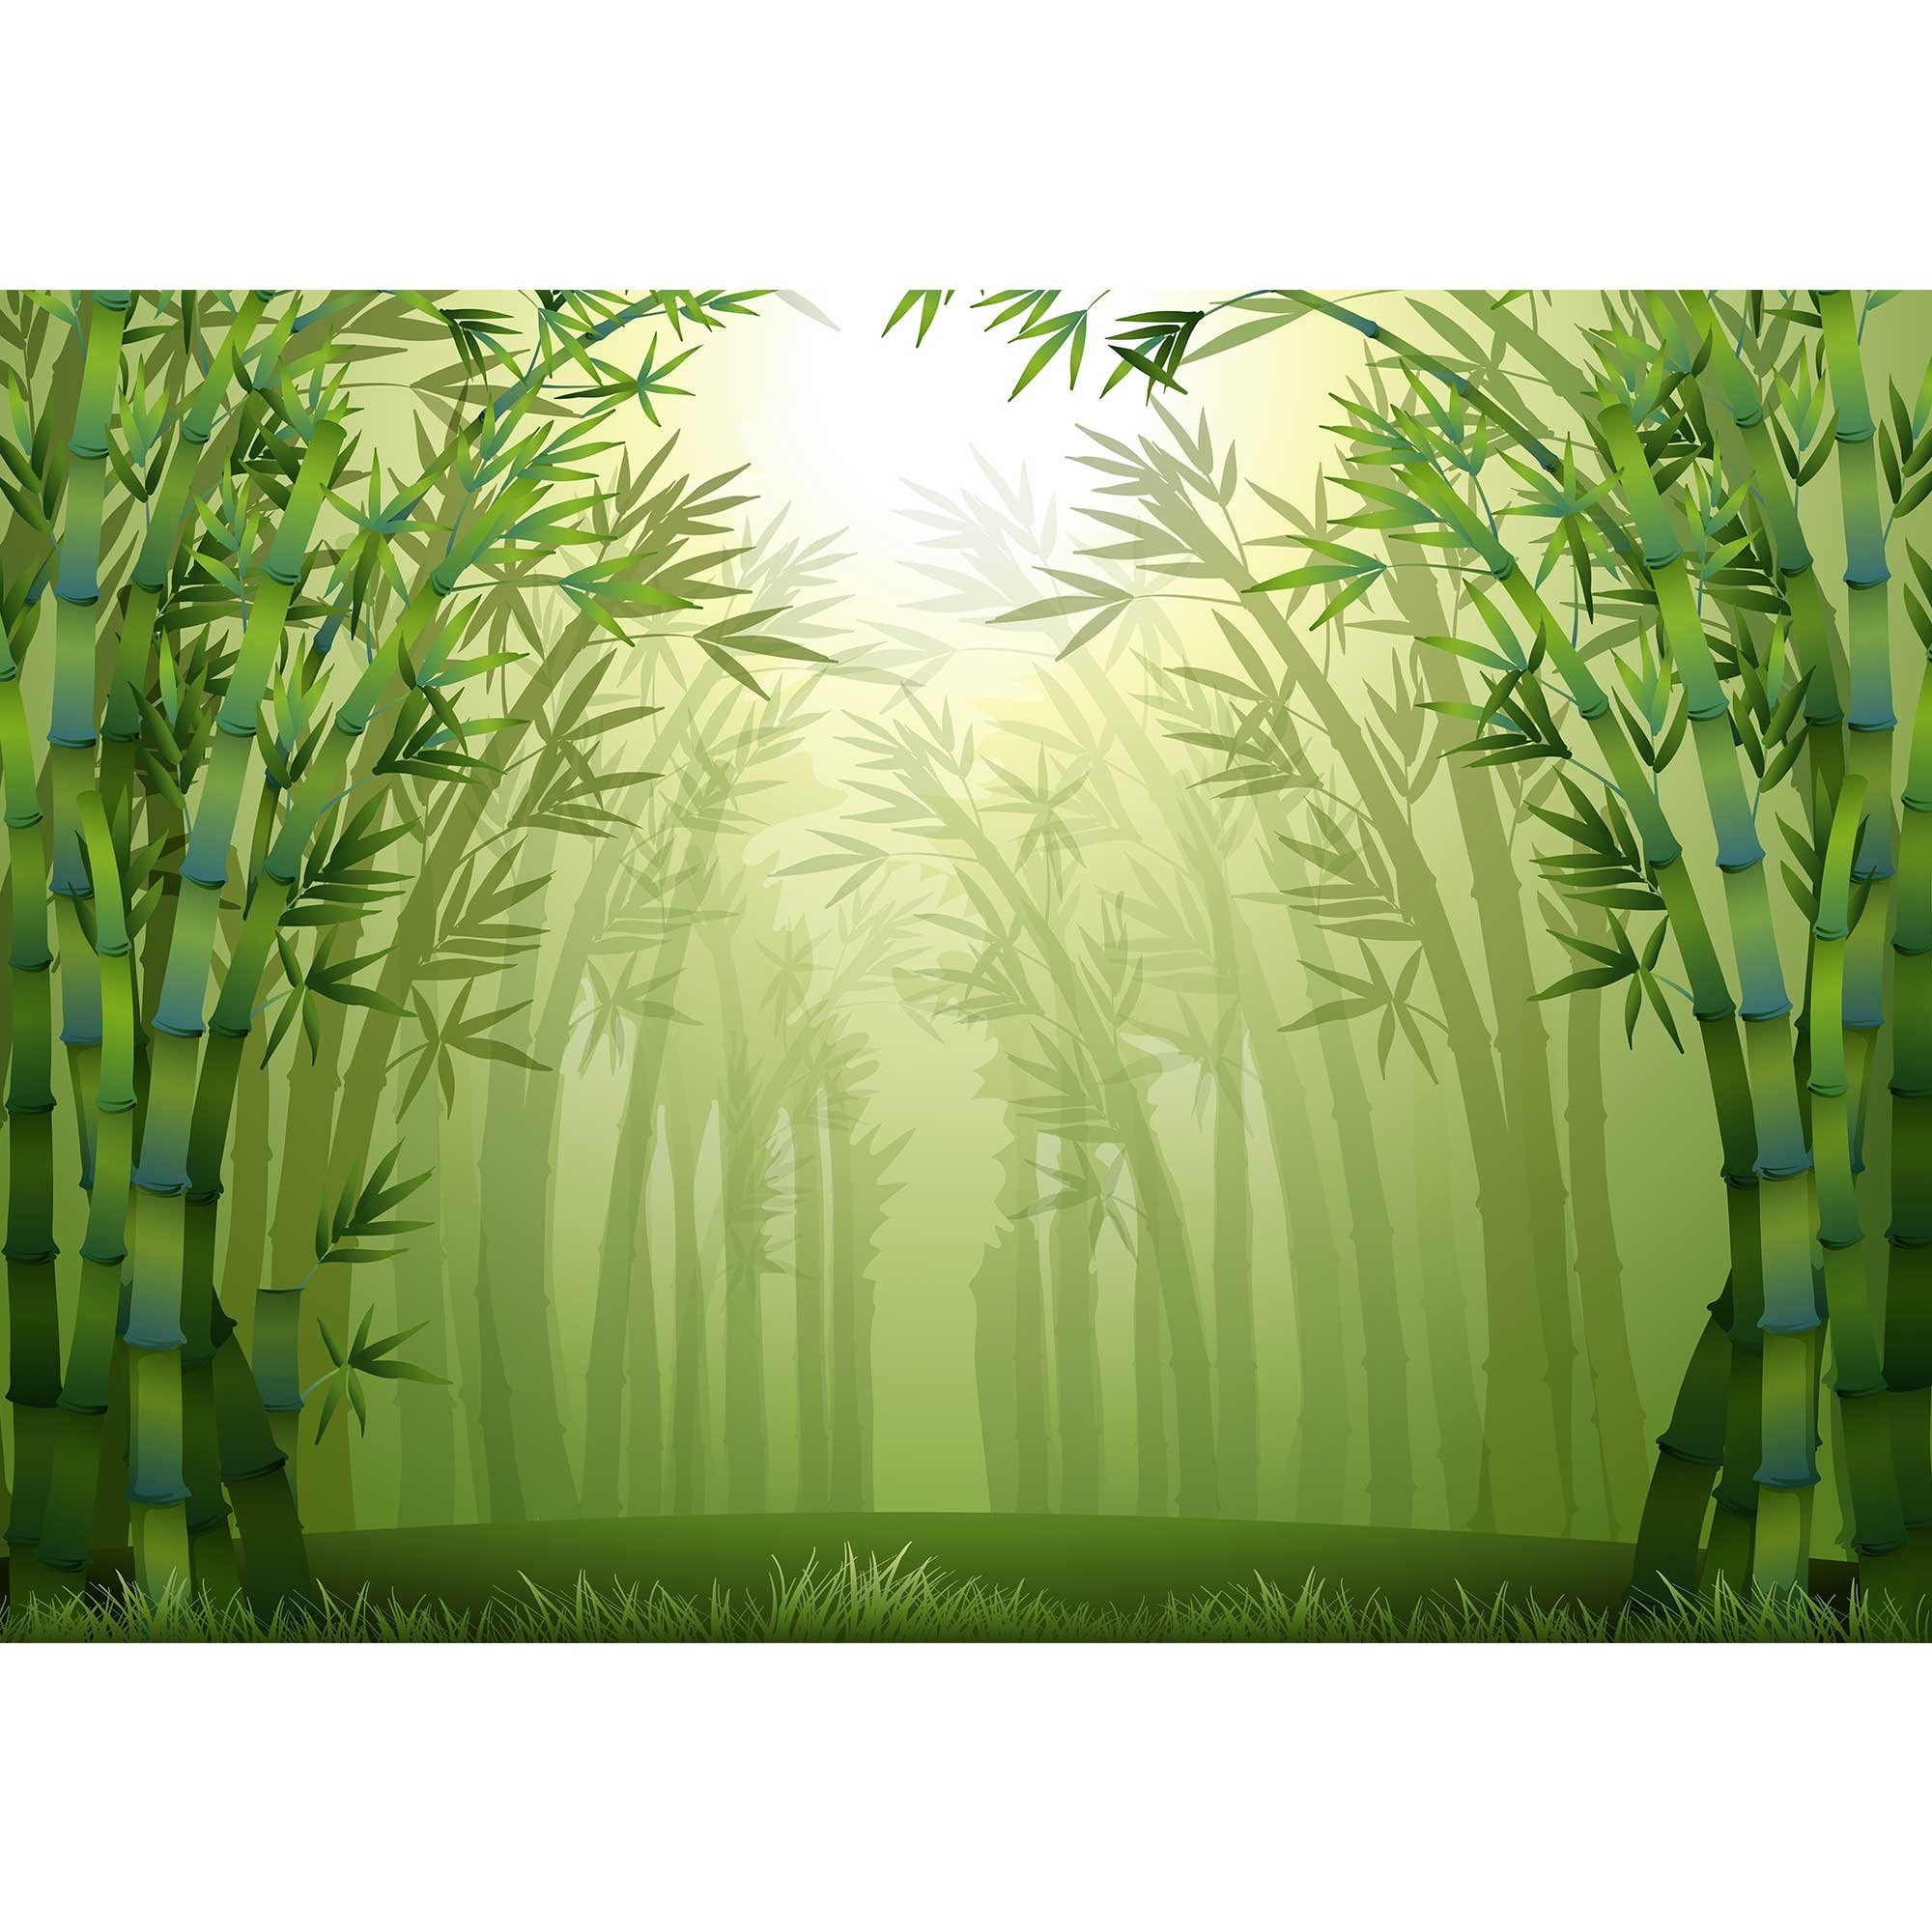 wall26 - Illustration of The Bamboo Trees Inside The Forest - Removable Wall Mural | Self-Adhesive Large Wallpaper - 100x144 inches by wall26 (Image #2)